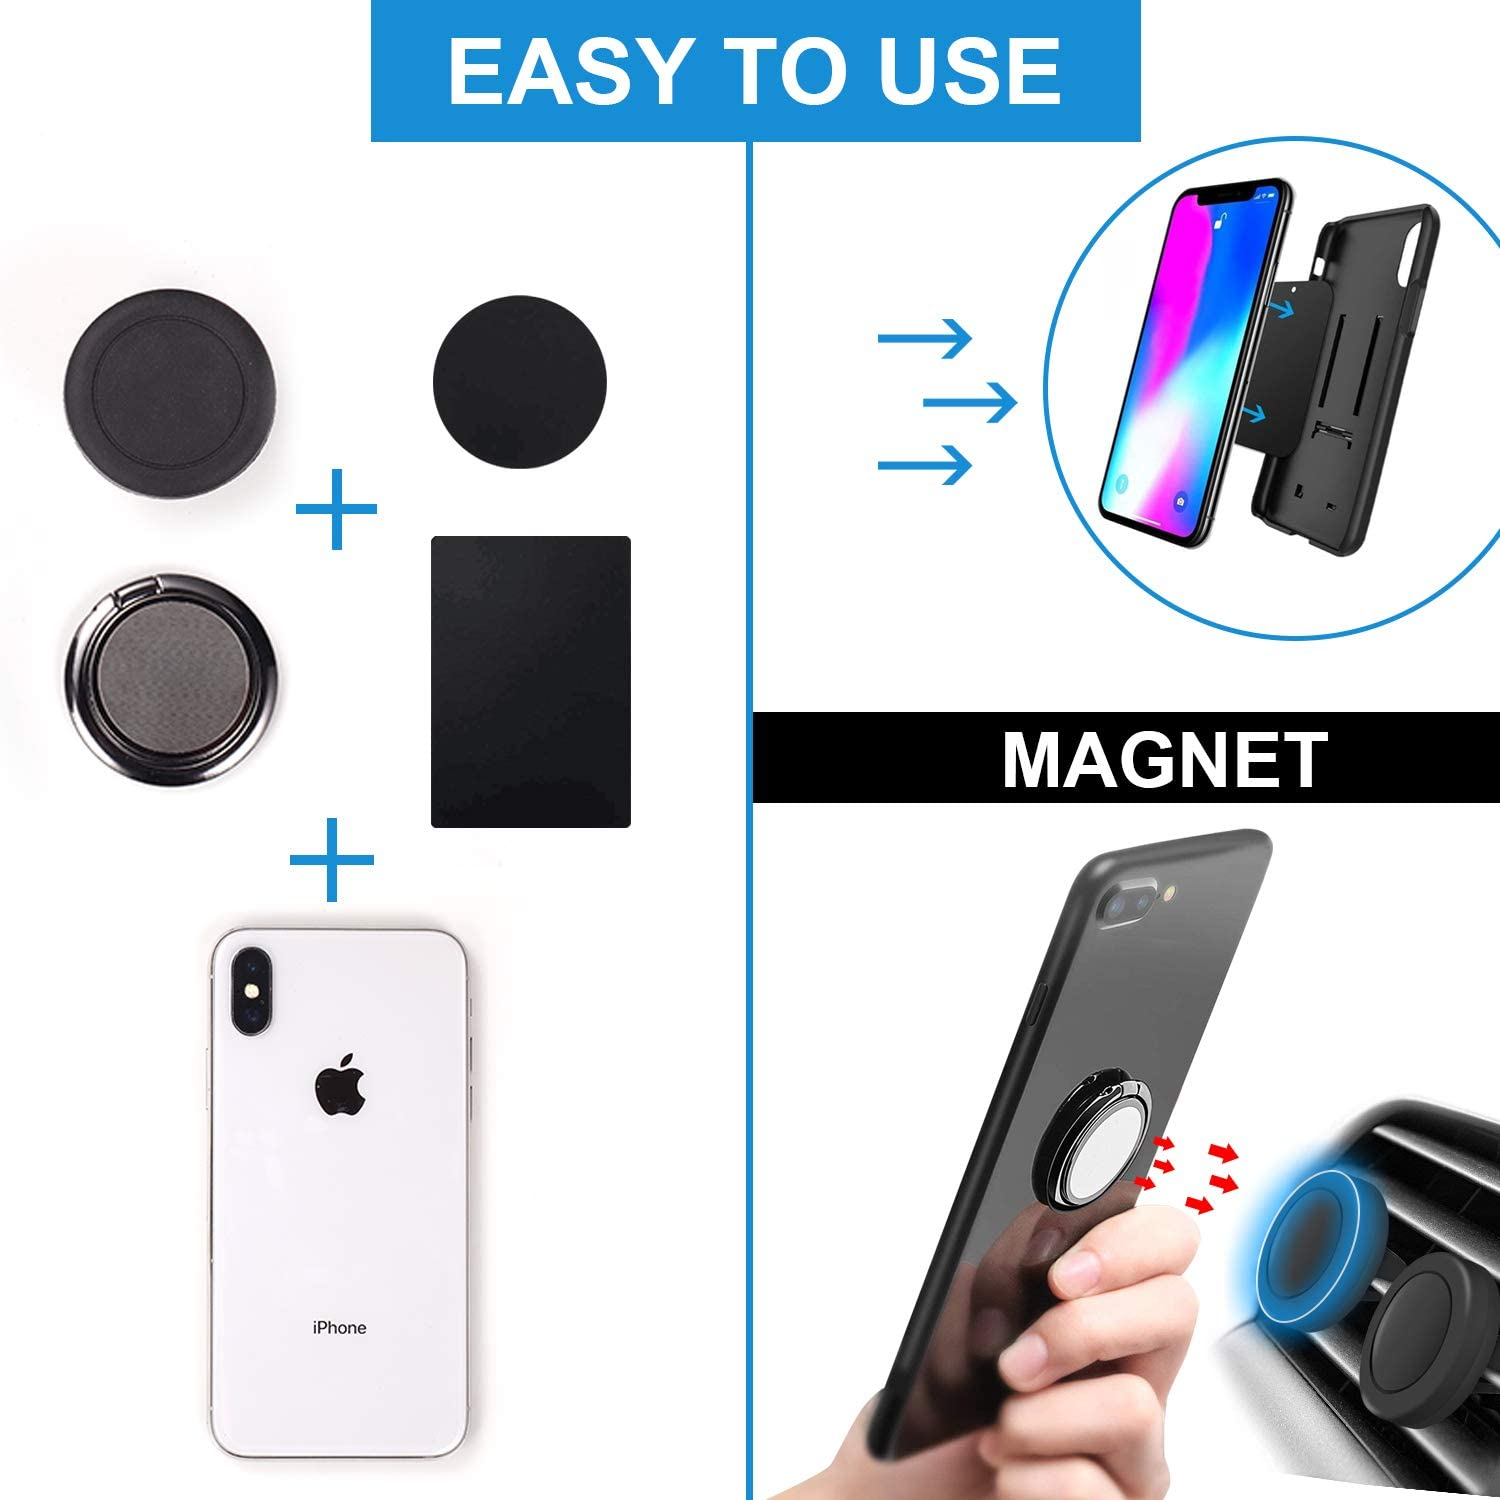 Rngeo Finger Ring Stand /& Magnetic Mount Set Compatible with All iPhone /& Android Smartphones Pack of 4 Universal Thin 360 Degree Rotation Phone Rings /& Air Vent Cell Phone Holder for Car